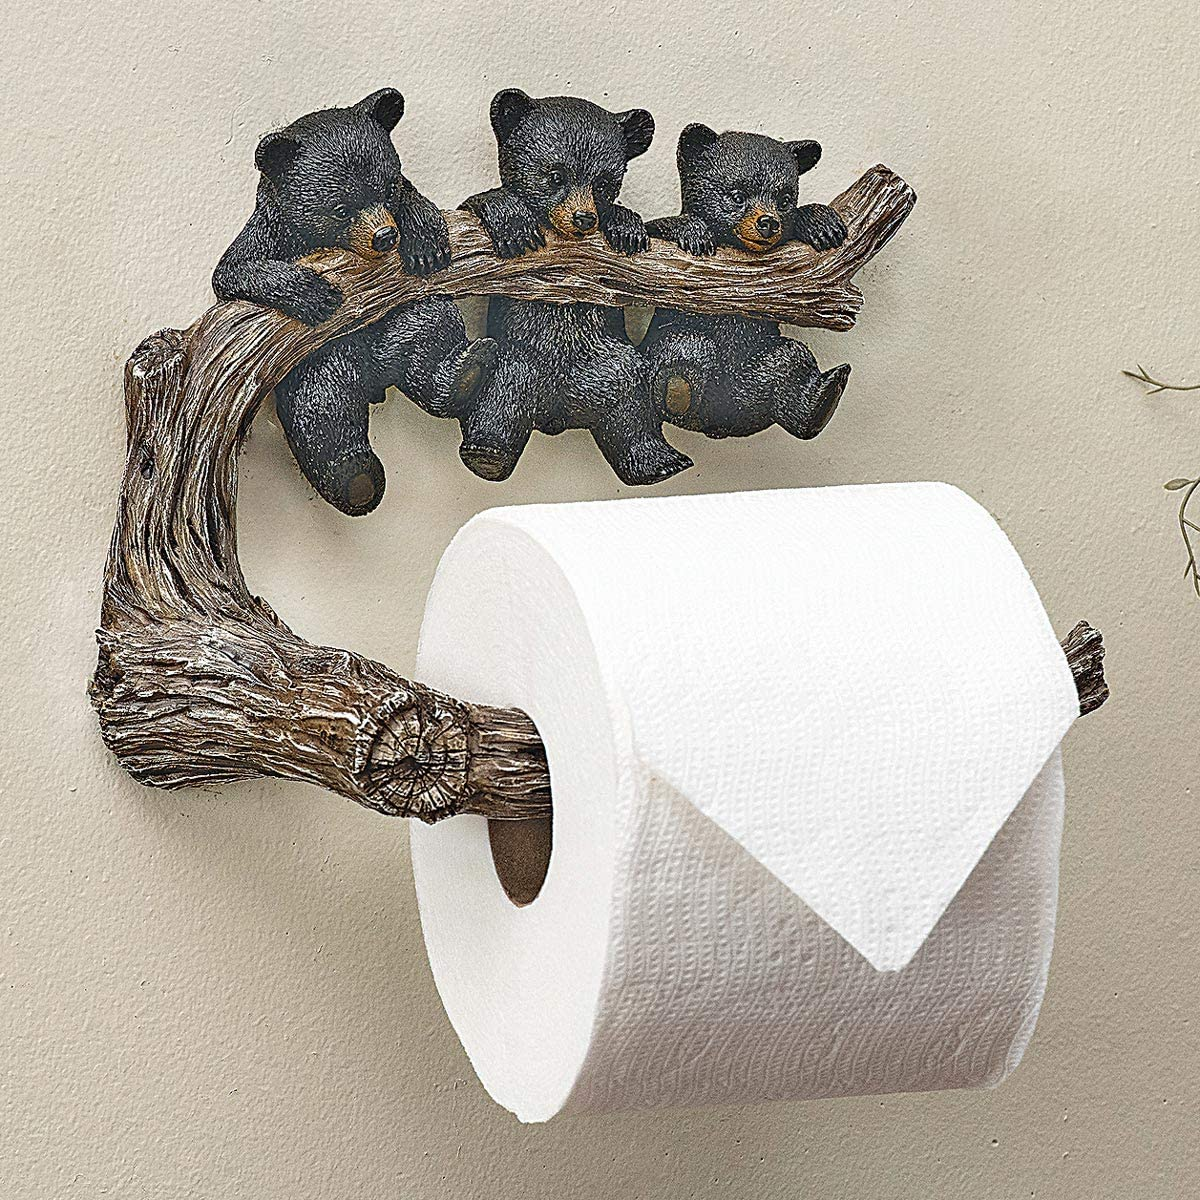 BLACK FOREST DECOR Bear Necessities Toilet Paper Holder